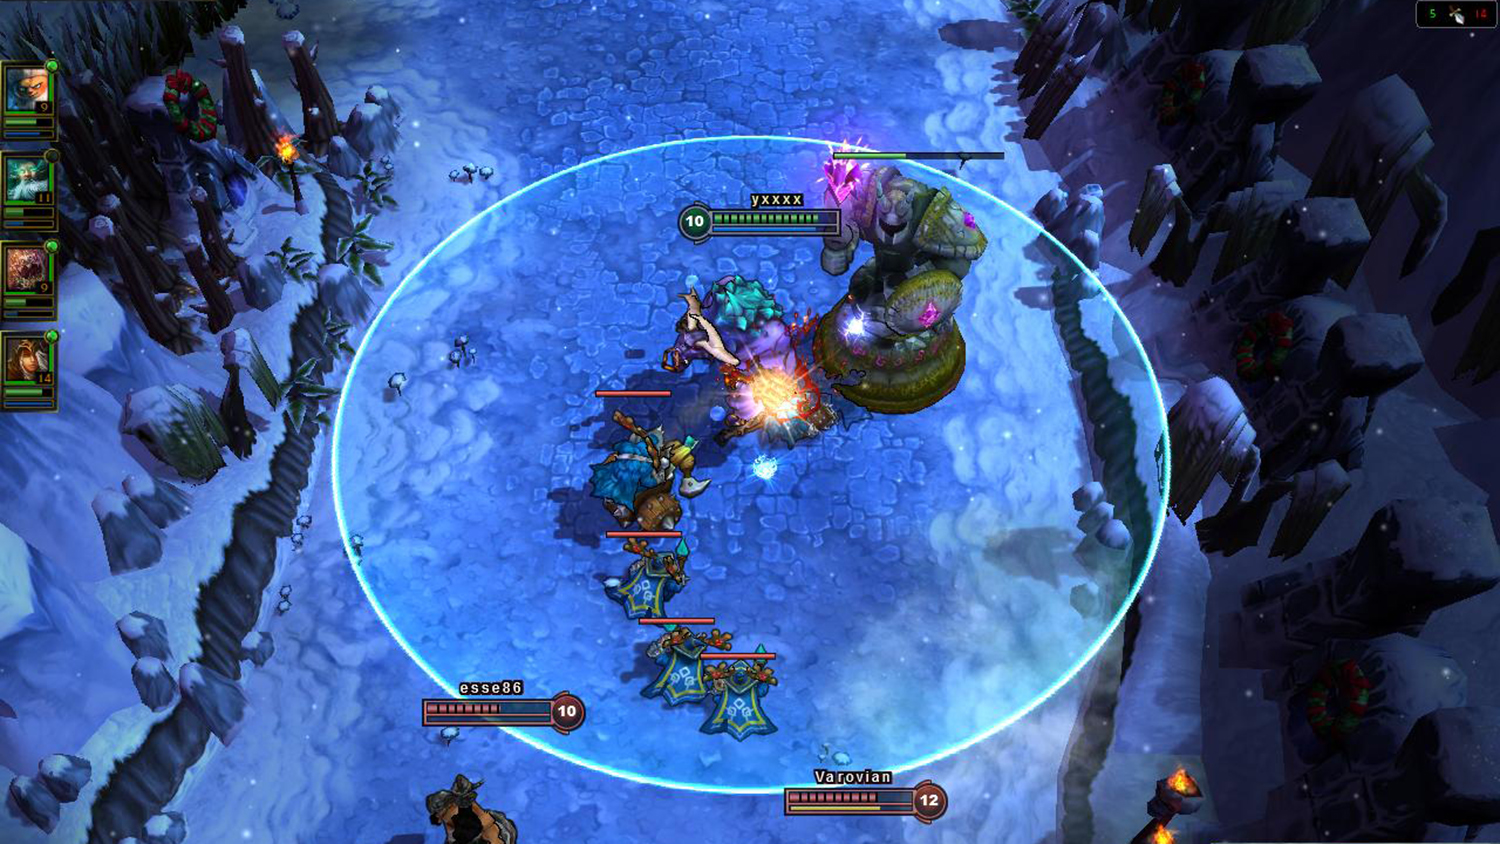 Screenshot from League of Legends game play